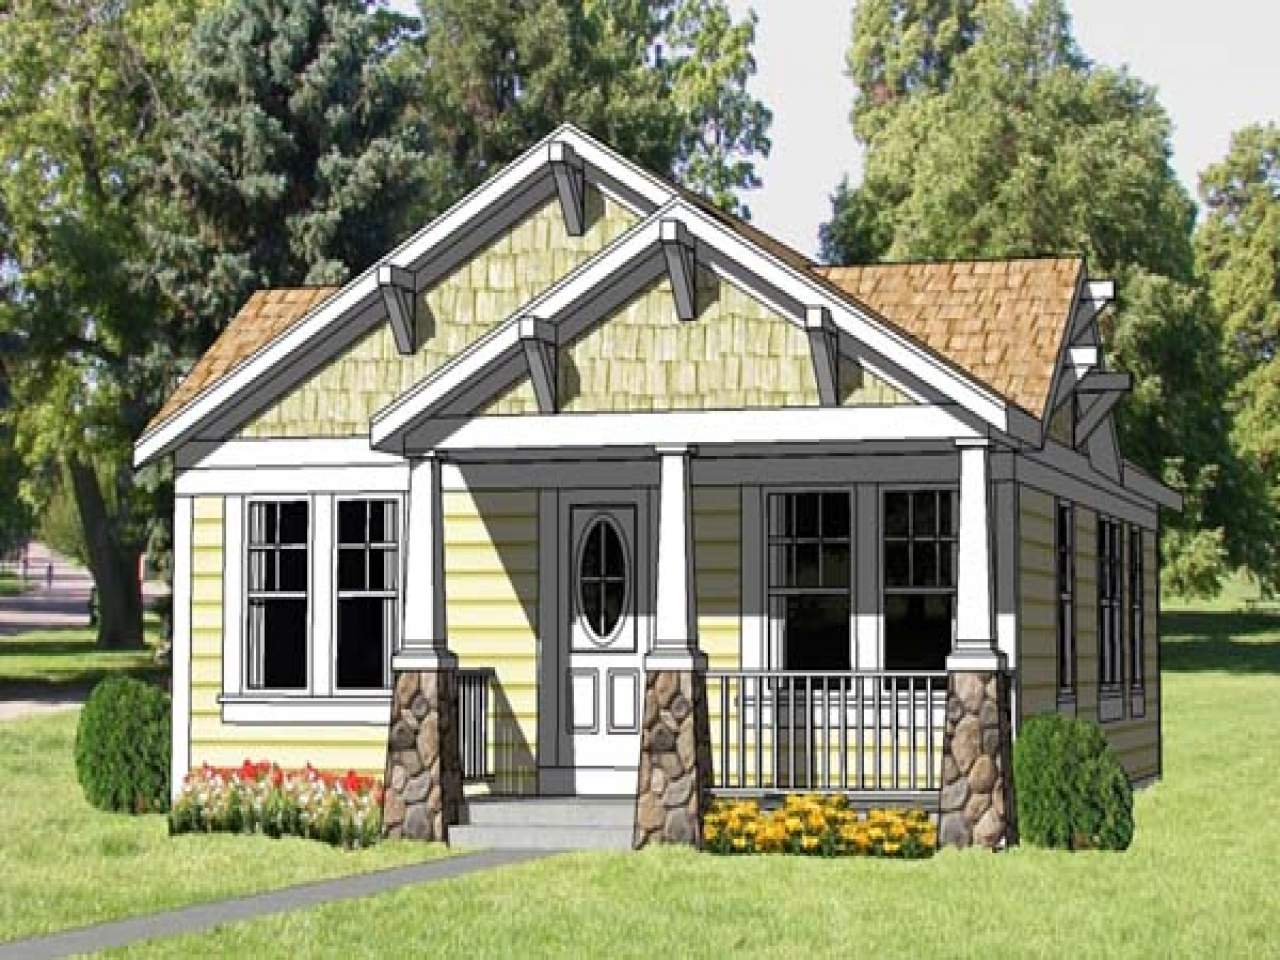 Small craftsman cottage style homes small craftsman style for Small craftsman home designs